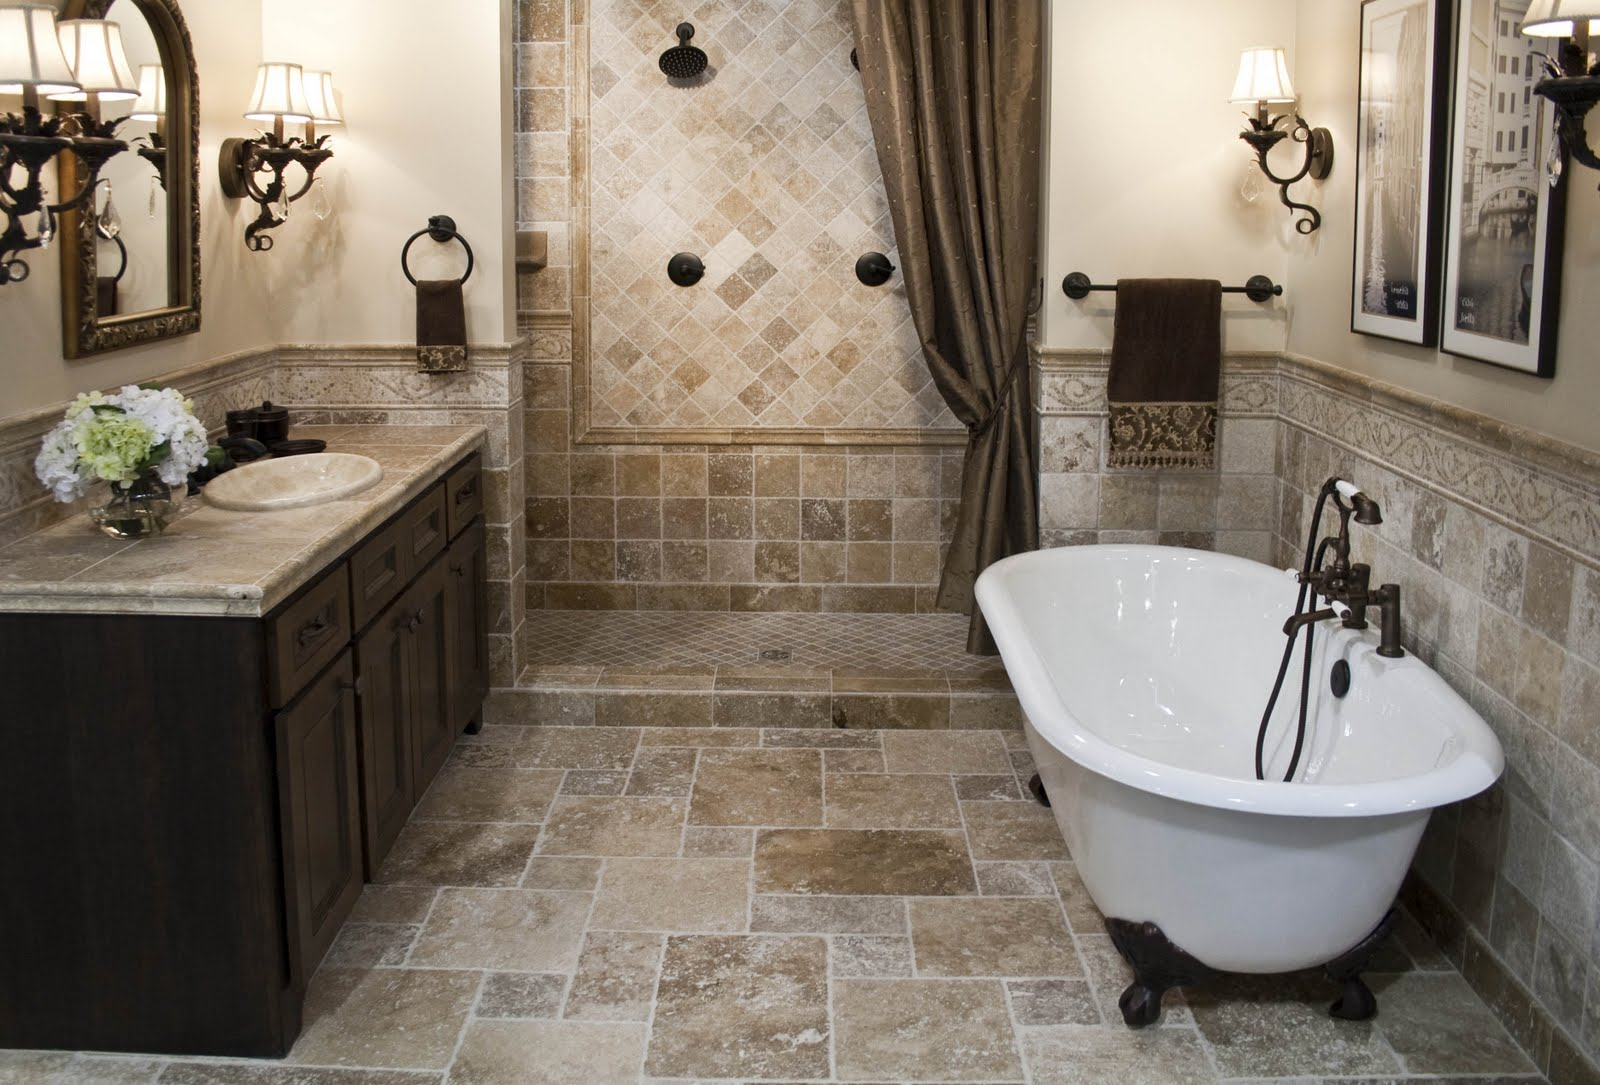 bathroom remodel tile floor. Bathrooms Remodeling With Bath Tub Plus Chic Bathroom Vanity Units Sink And Mirror Wall Remodel Tile Floor